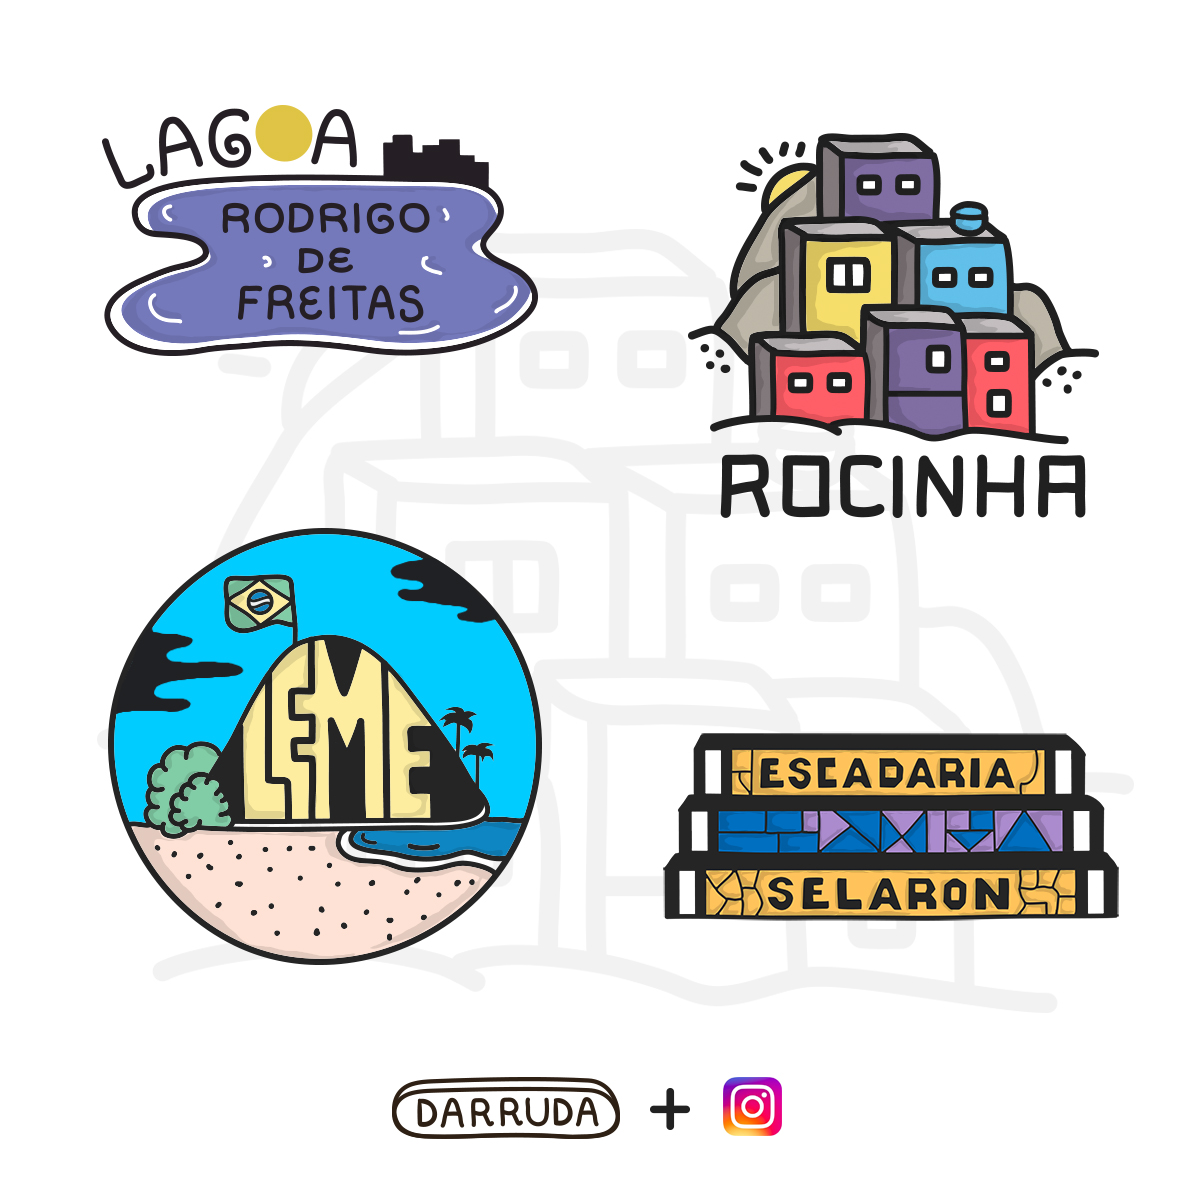 colorful drawings representing the locations of the city